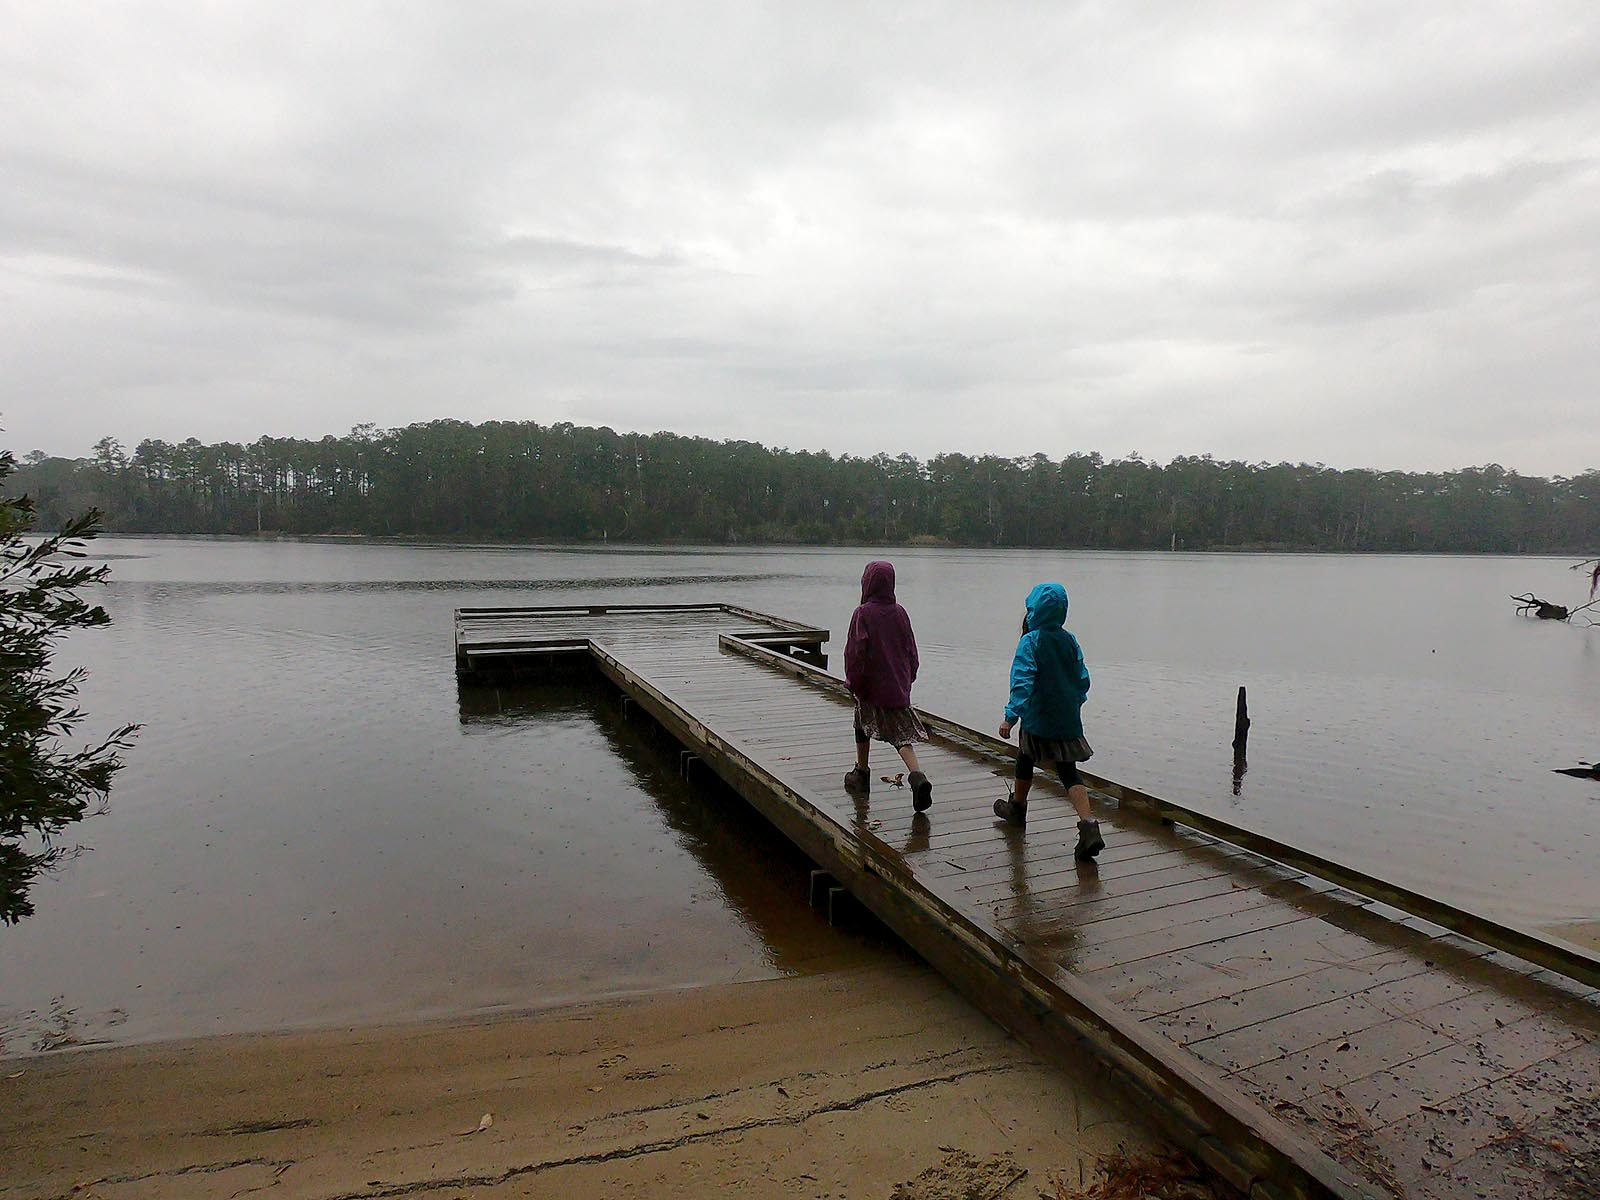 Two girls on overcast day at boating ramp and dock at Goose Creek State Park Campground Road access